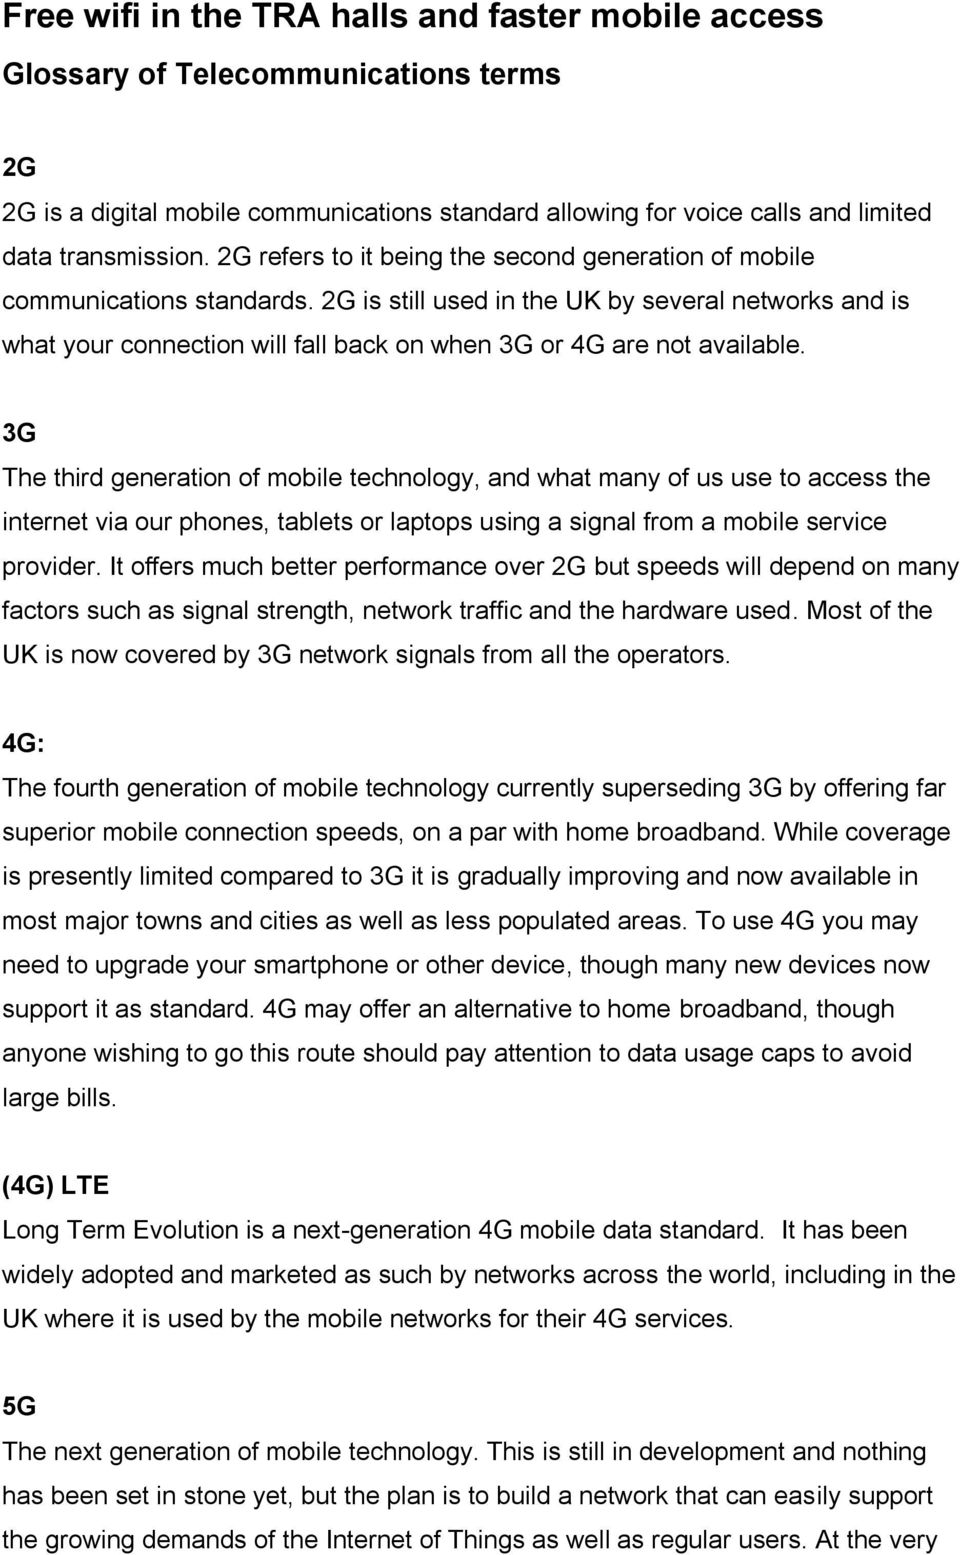 2G is still used in the UK by several networks and is what your connection will fall back on when 3G or 4G are not available.